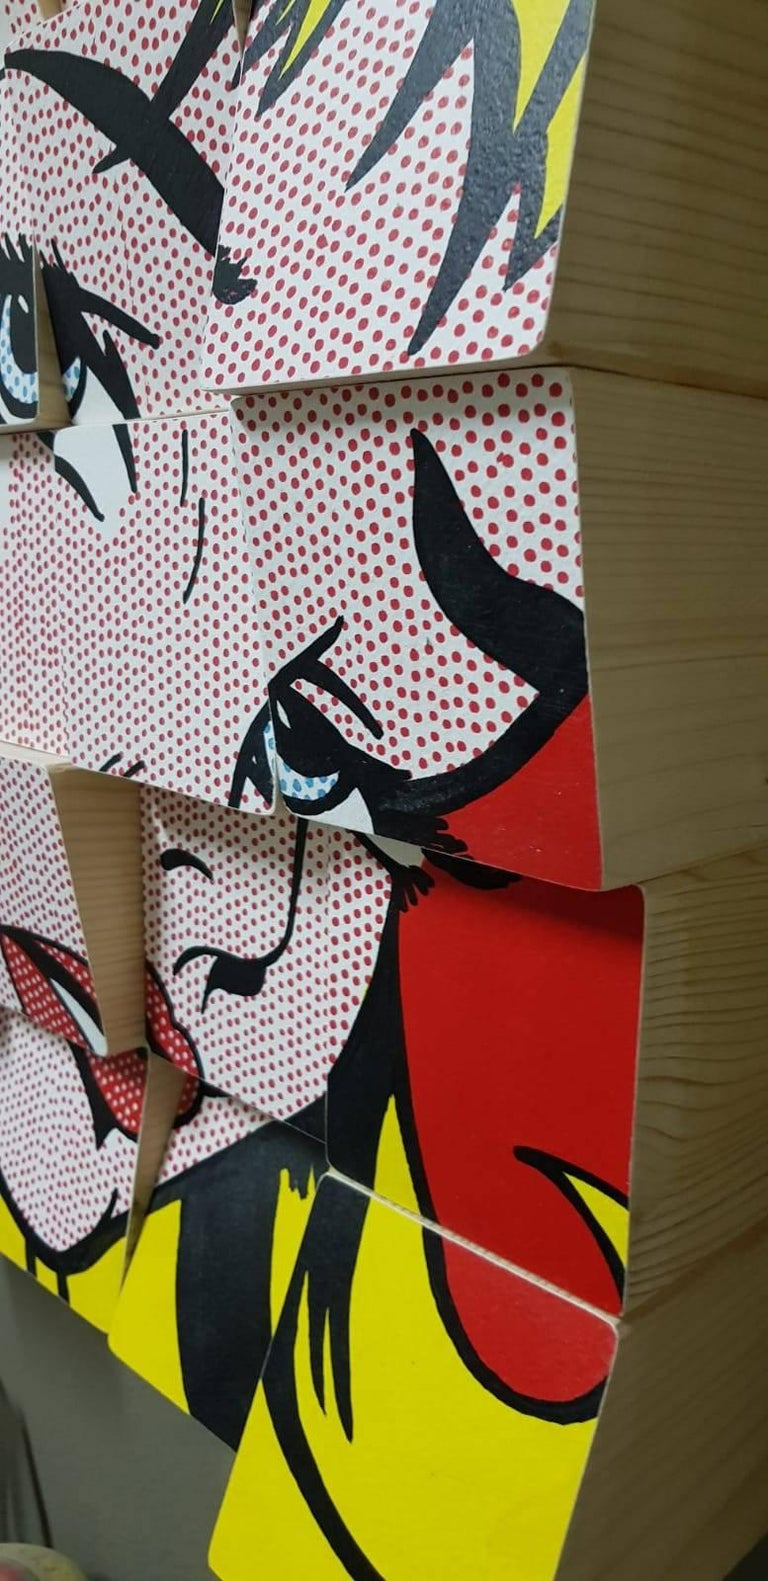 My Girl tribute to Roy Lichtenstein Acrylic Paint on Cotton Paper, Wooden Blocks For Sale 2